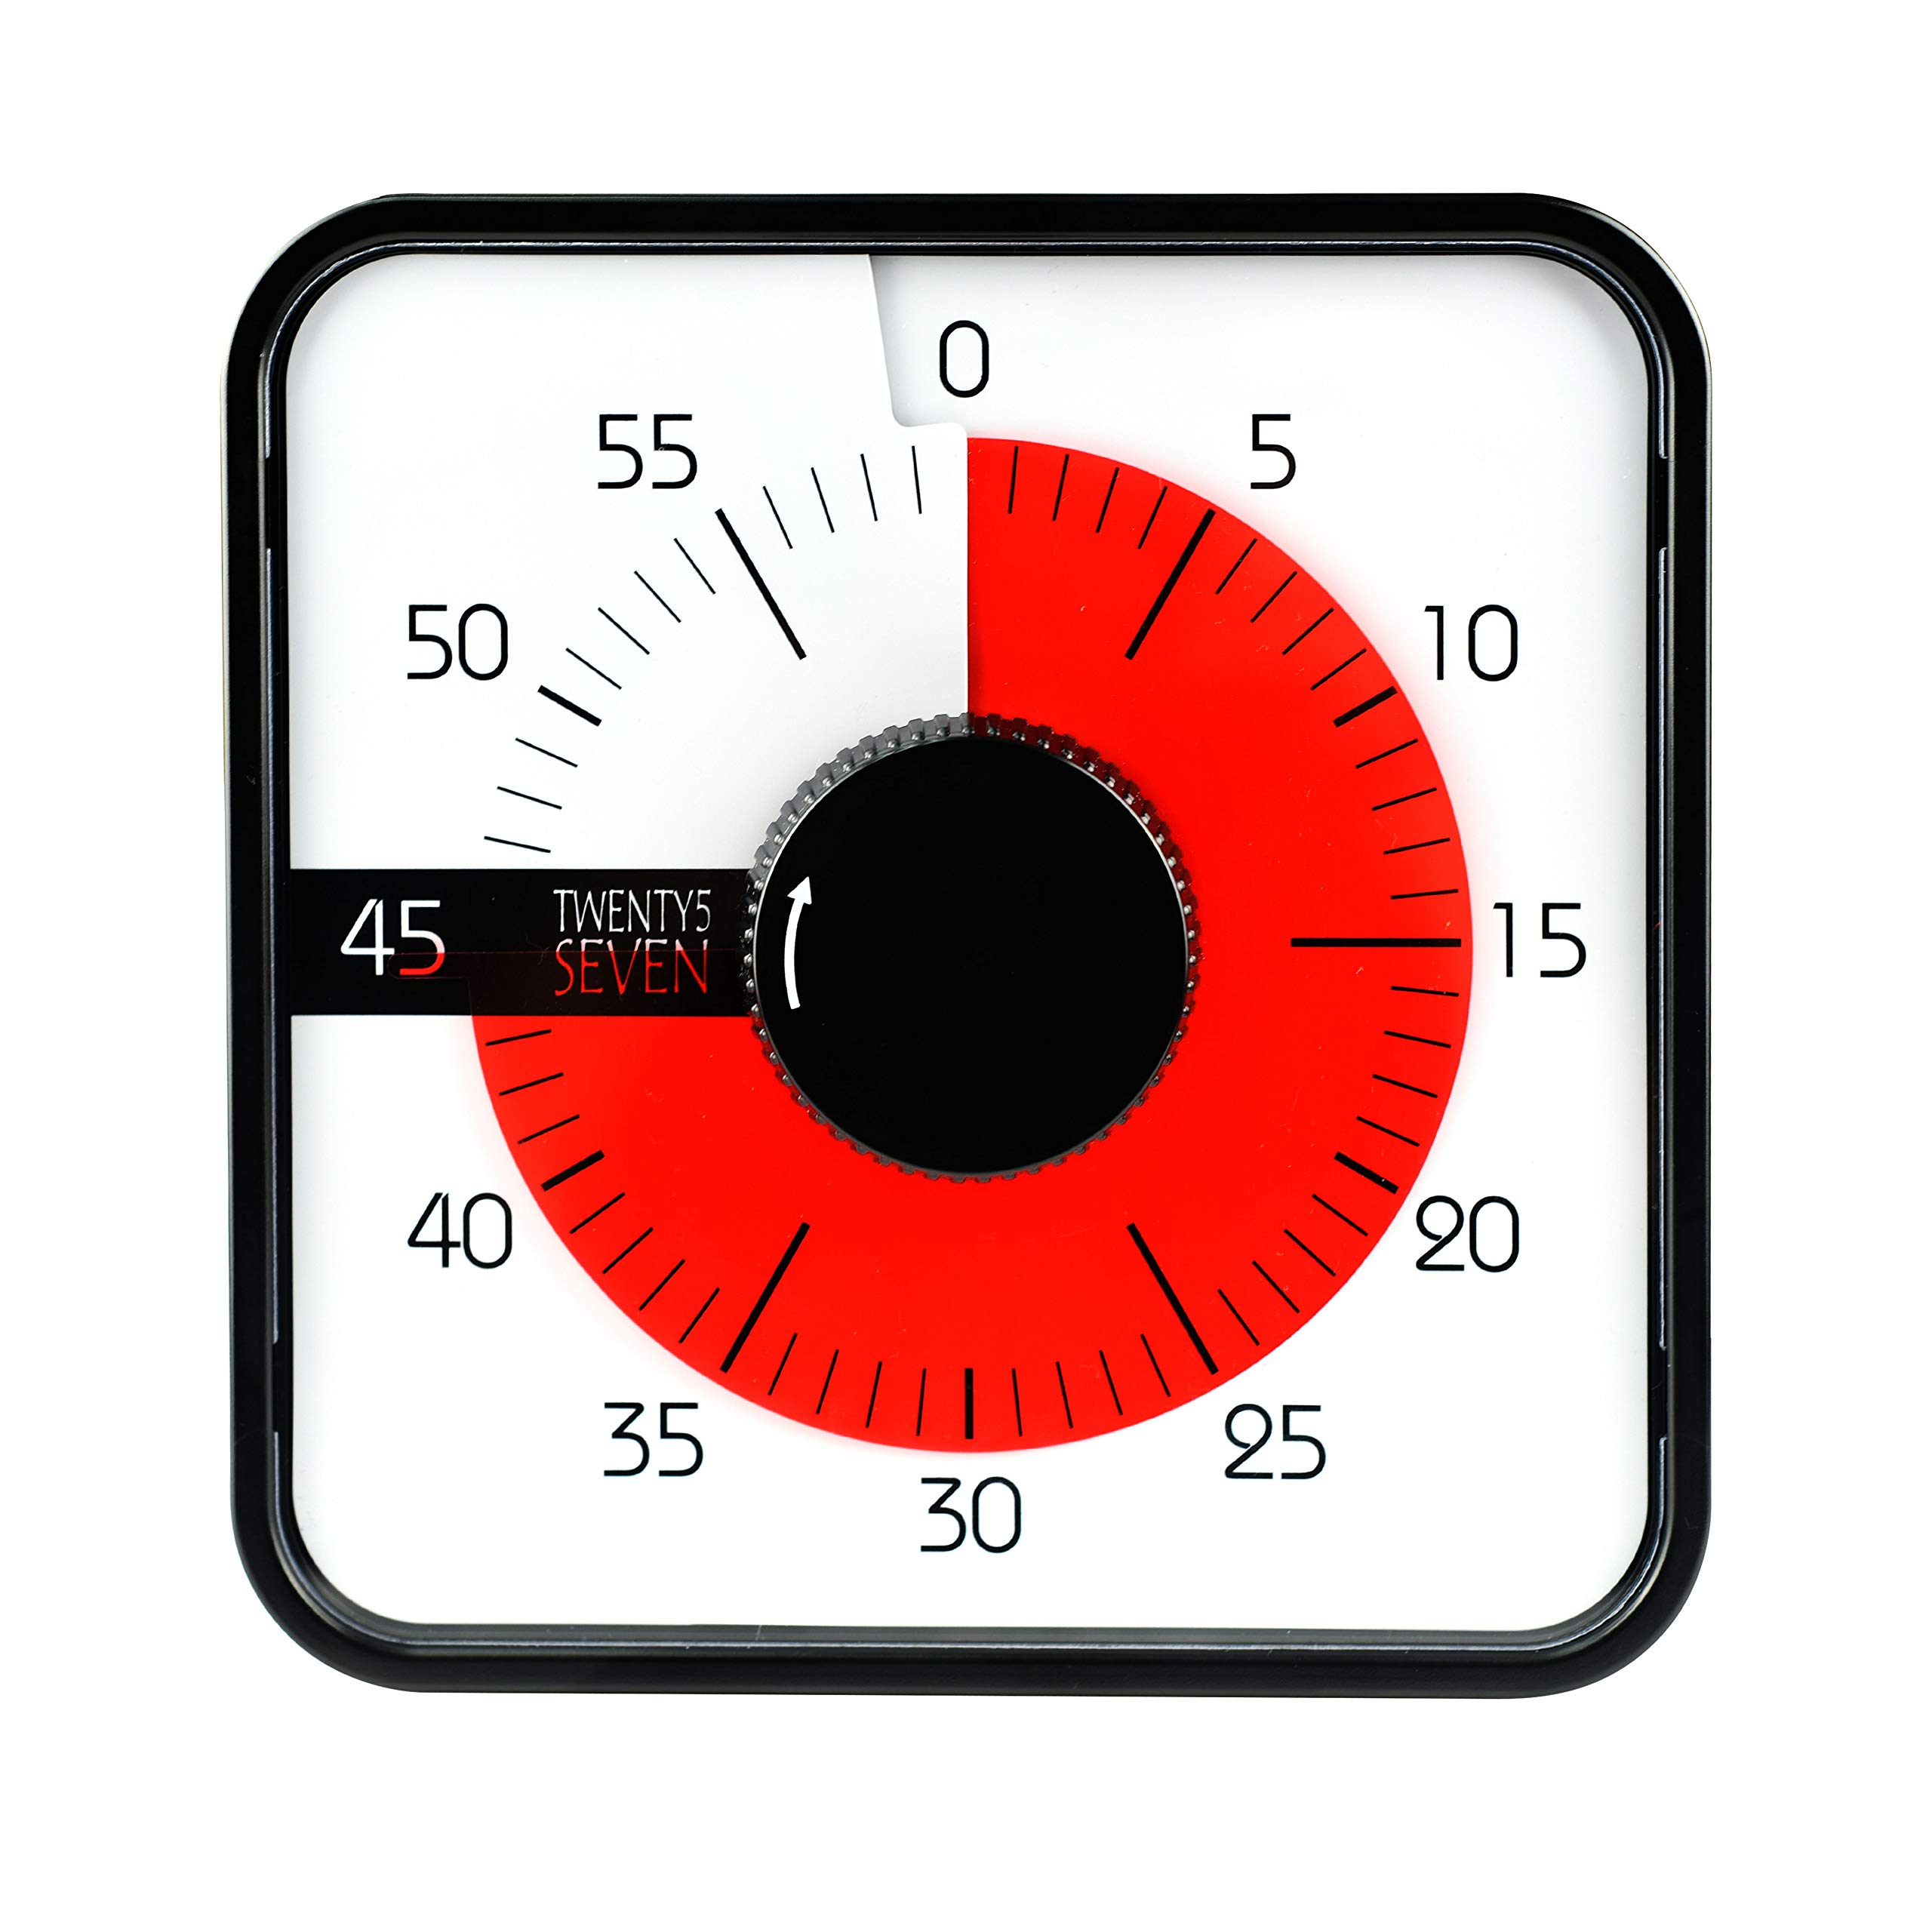 Countdown Timer 7.5 inch; 60 Minute 1 hour Visual Timer - Classroom Teaching Tool Office Meeting, Mechanical Countdown Clock for Kids Exam Time Management Megnetic Black by TWENTY5 SEVEN